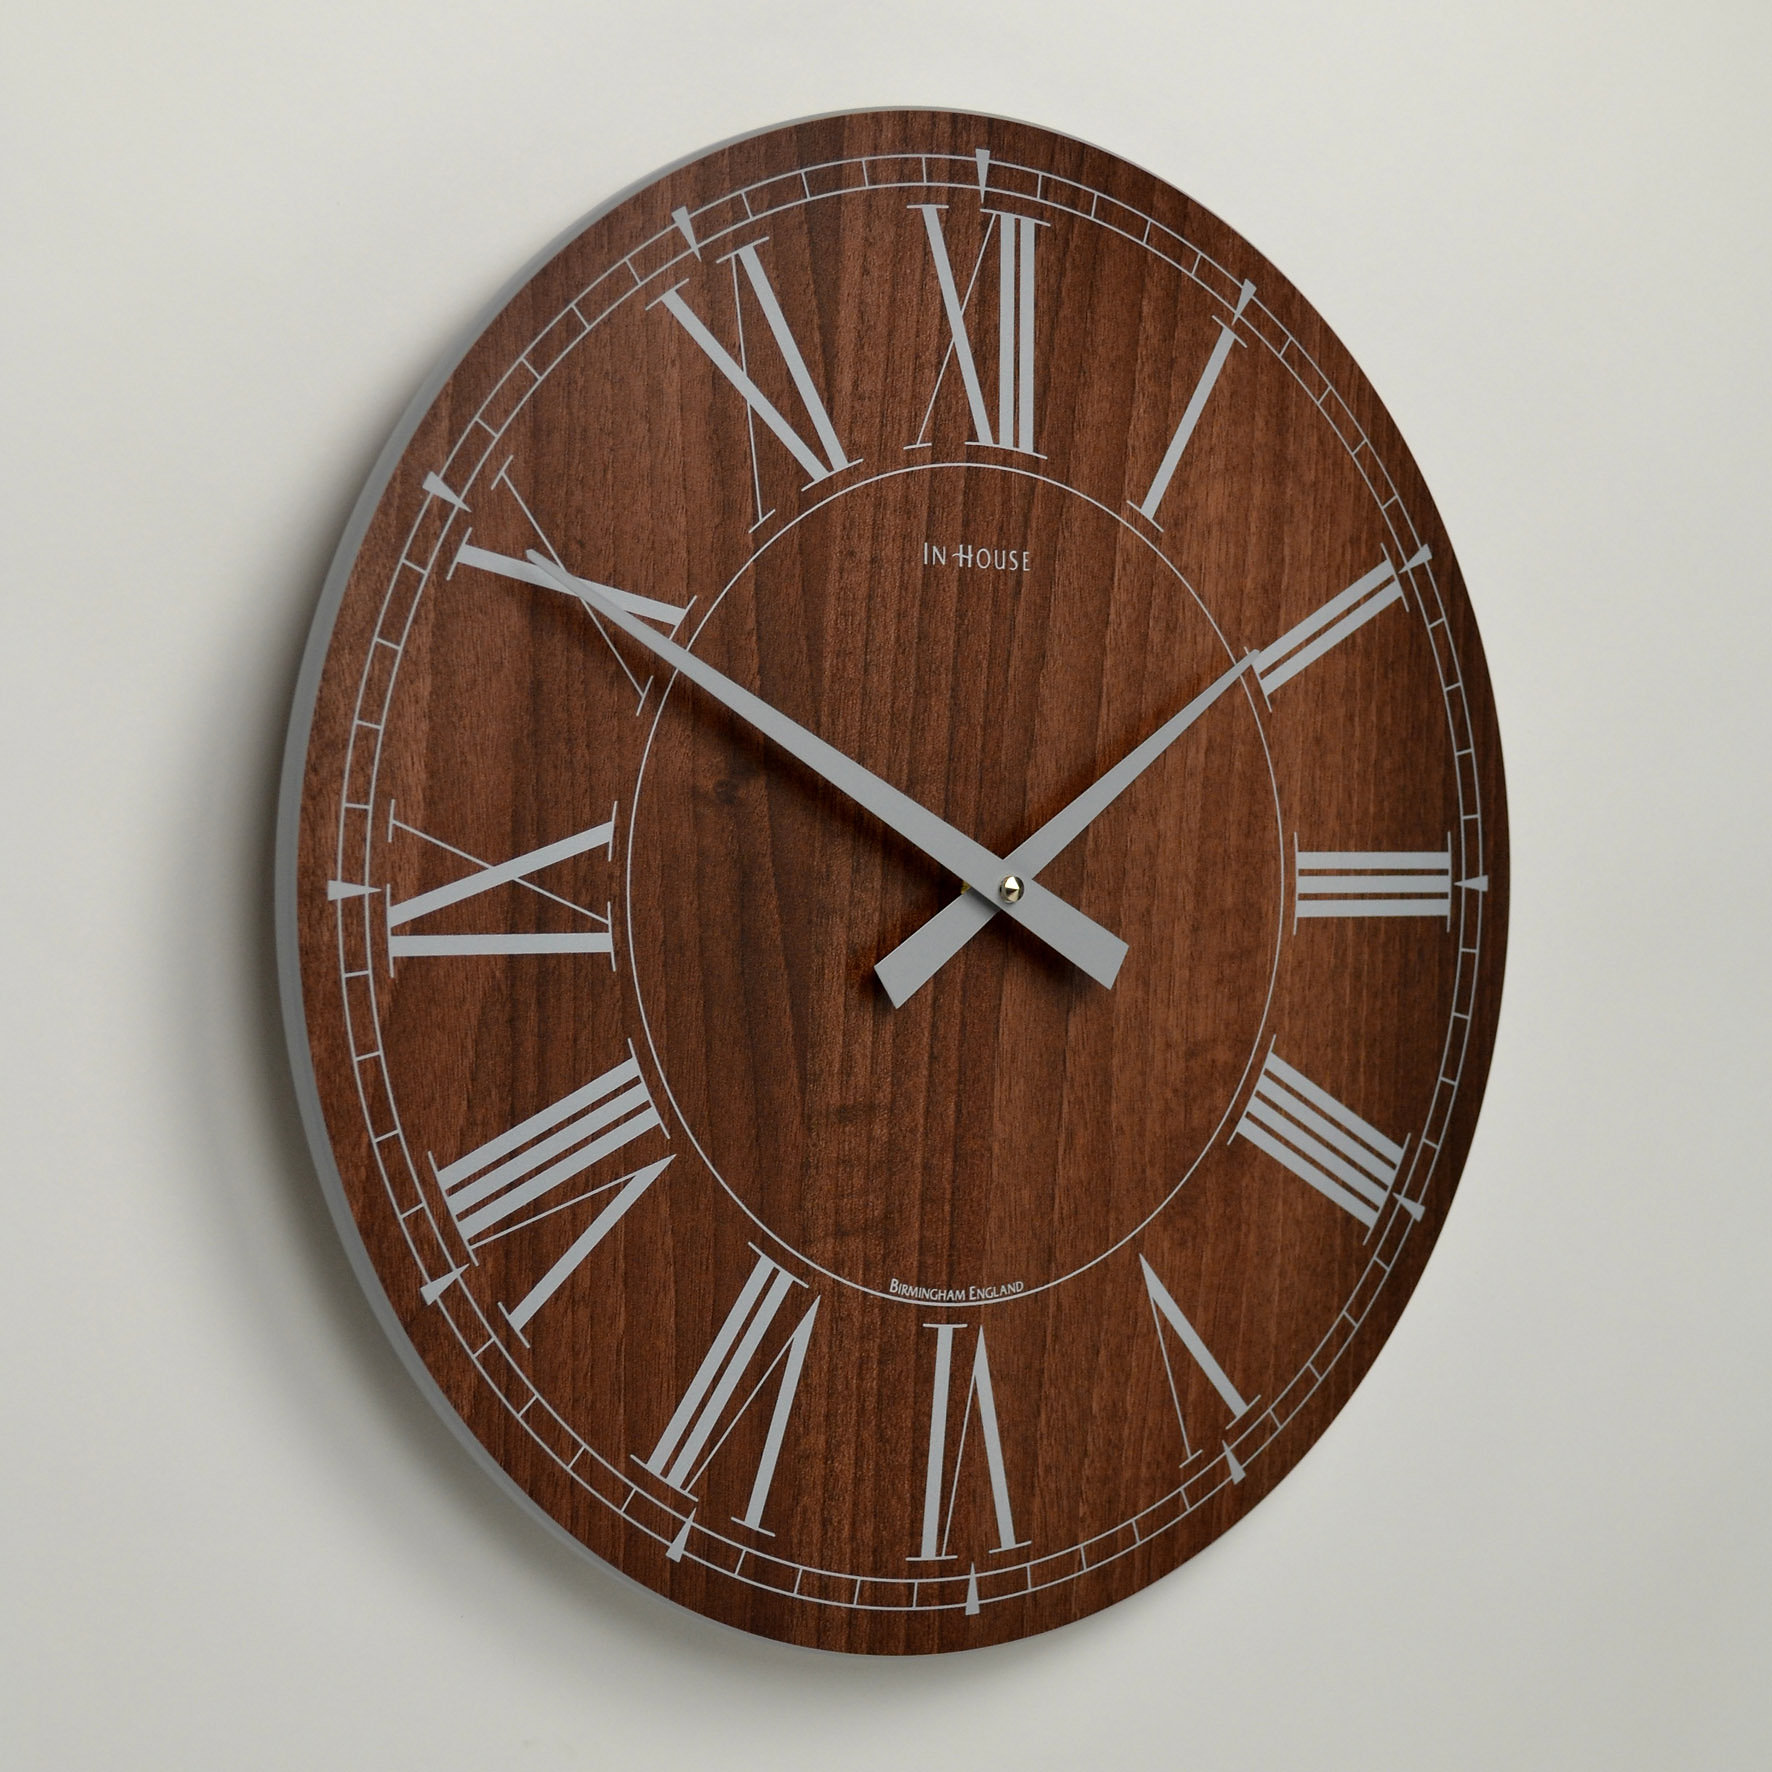 Inhouseclocks contemporary clocks handmade in england home at in house we have been designing and hand making contemporary clocks since 1985 our station wall clock was fist produced by us in 1990 and has been a amipublicfo Image collections